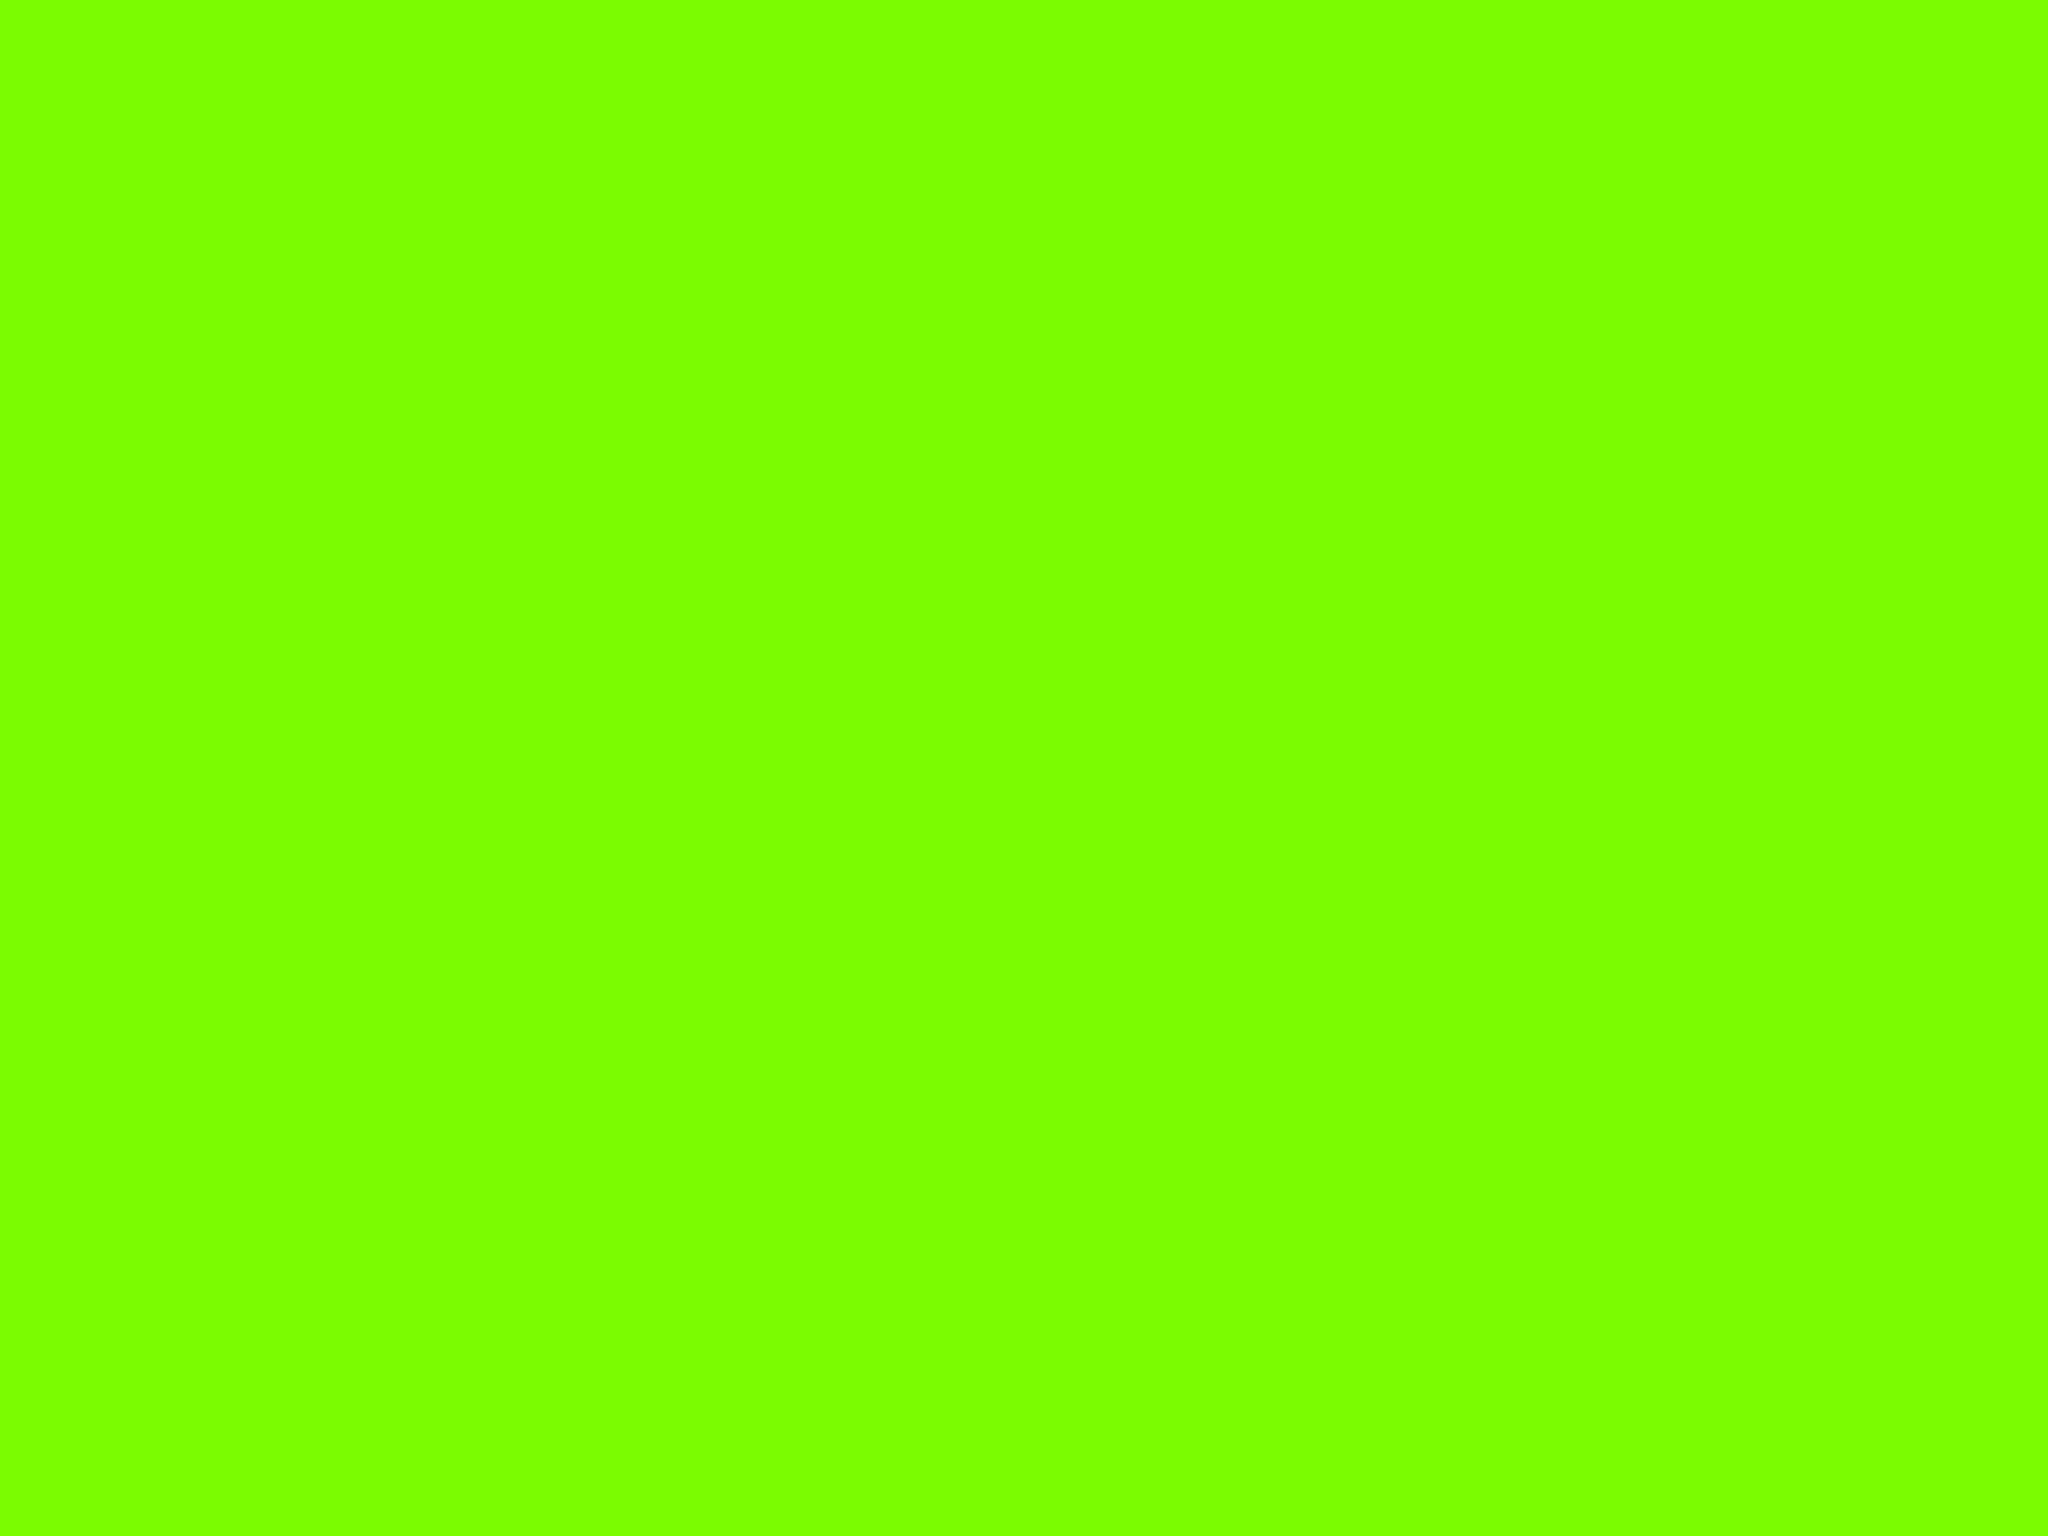 2048x1536 Lawn Green Solid Color Background